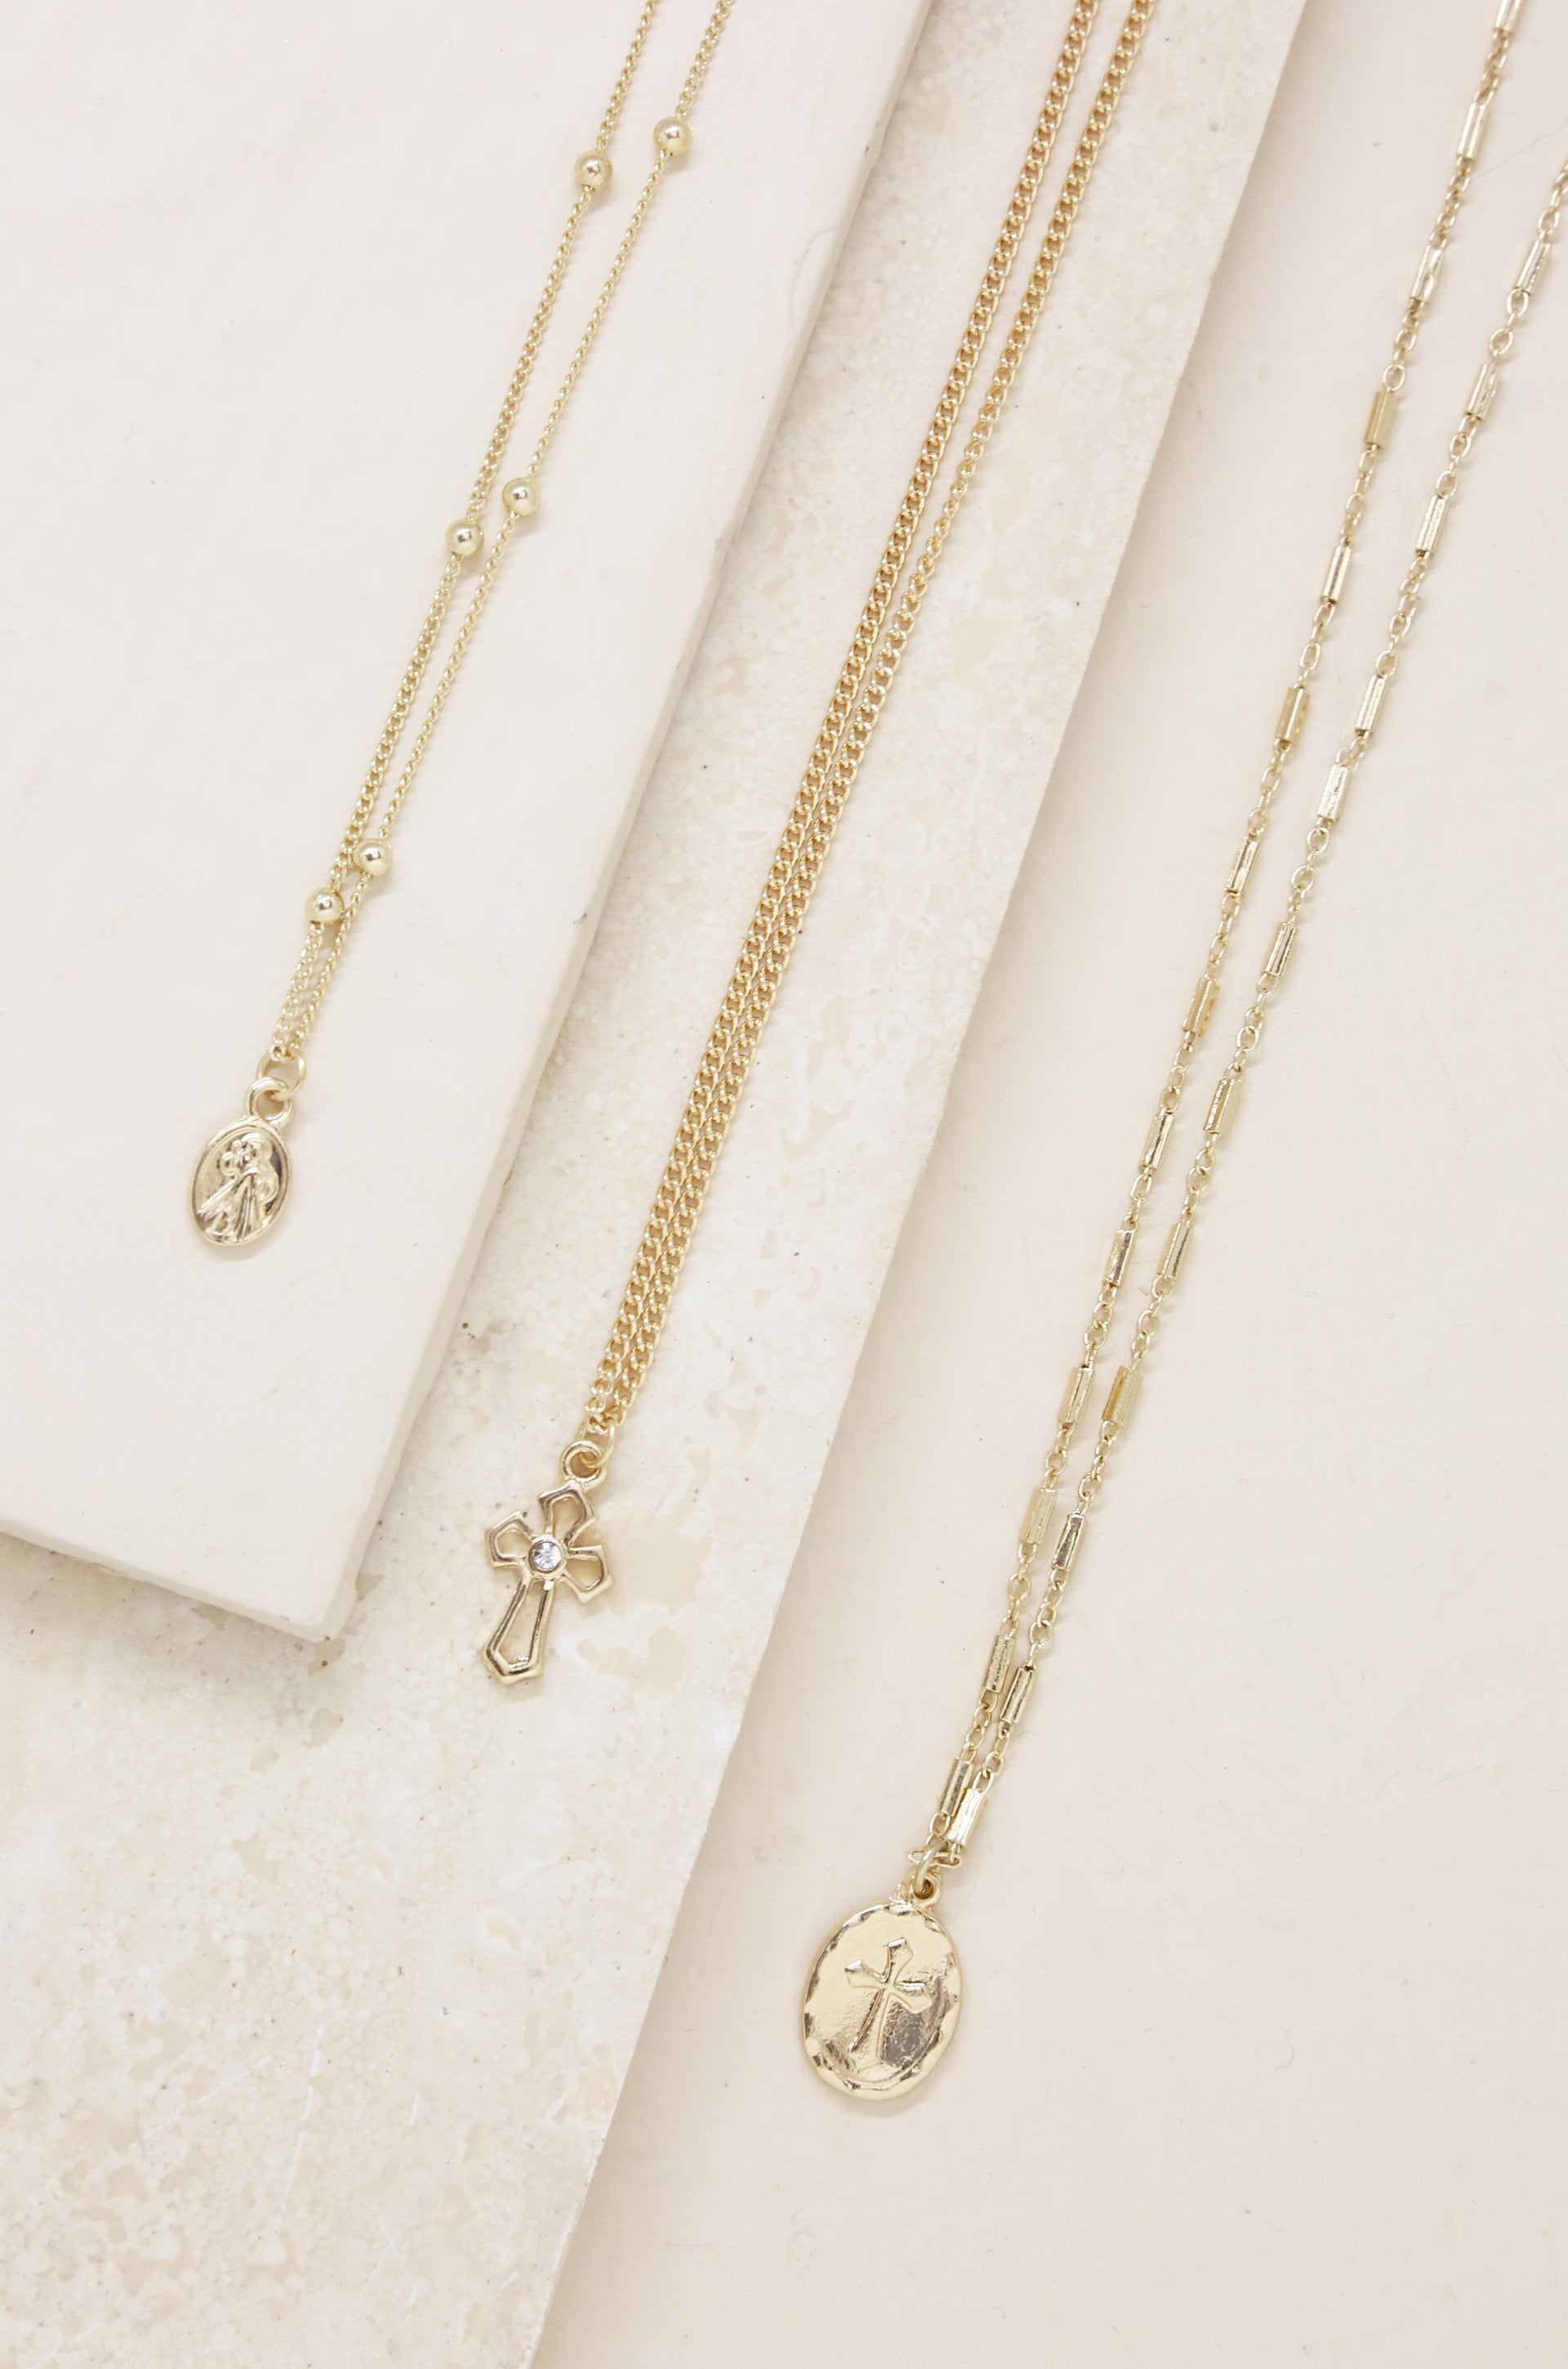 Let's Go Layers 18k Gold Plated Necklace